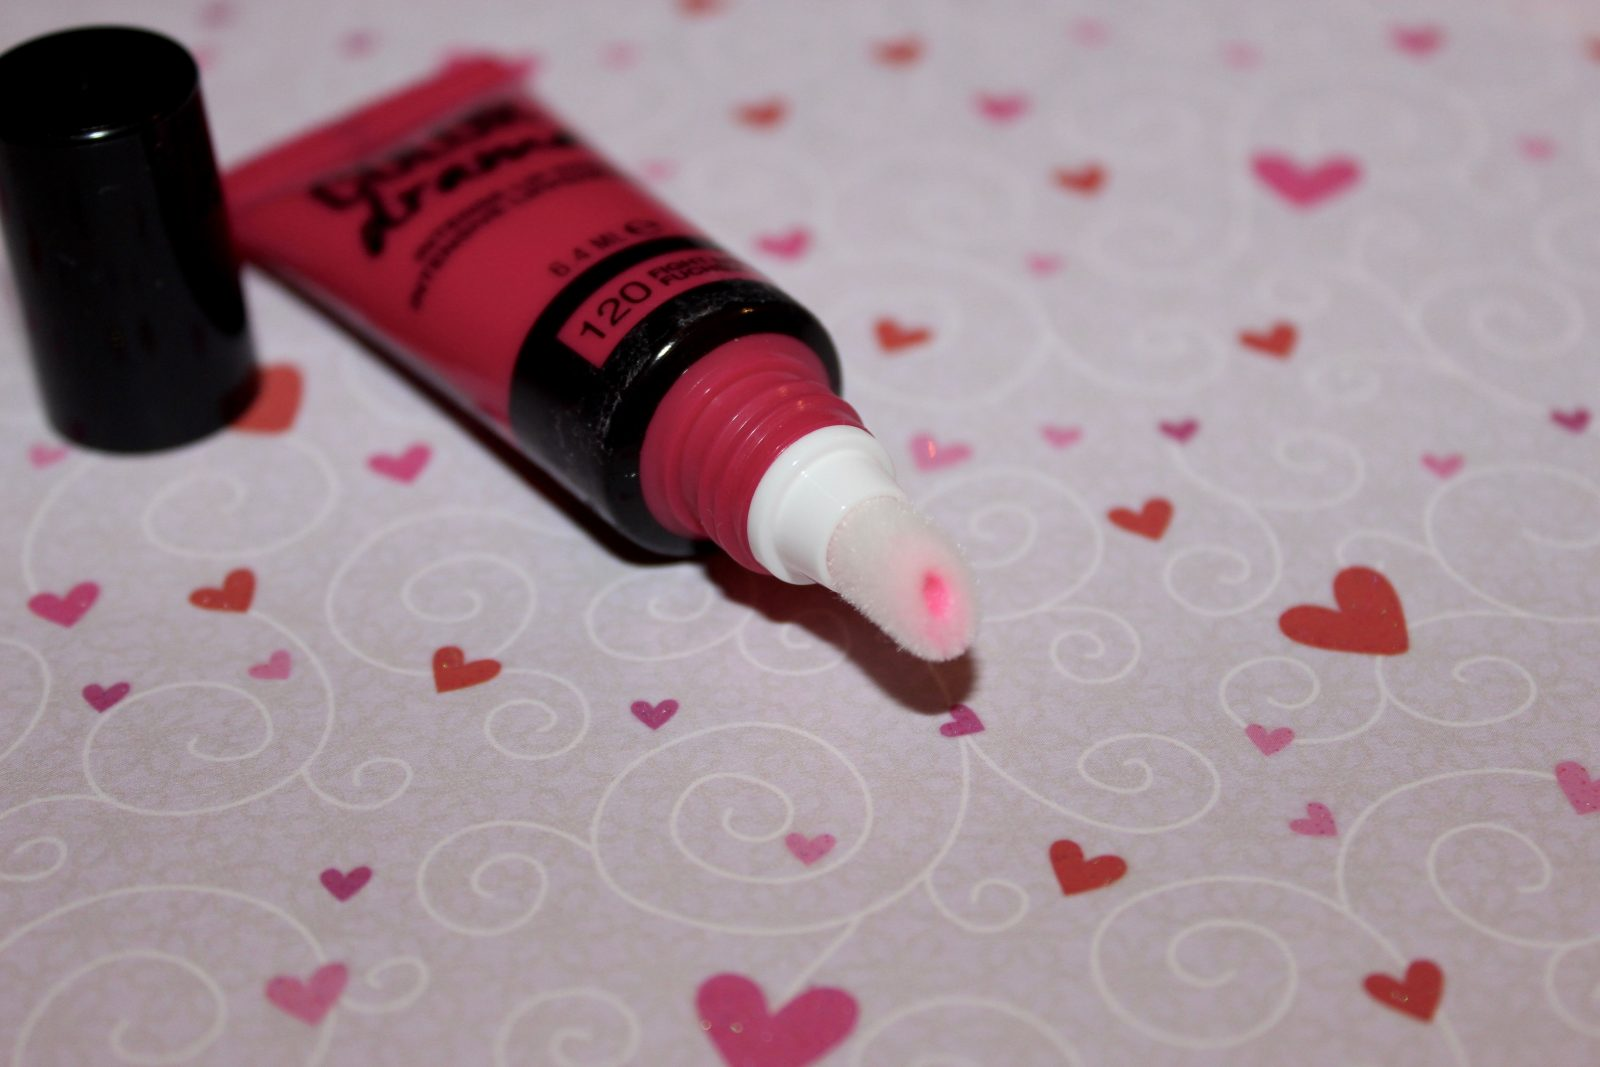 Maybelline Color Drama Intense Lip Paint